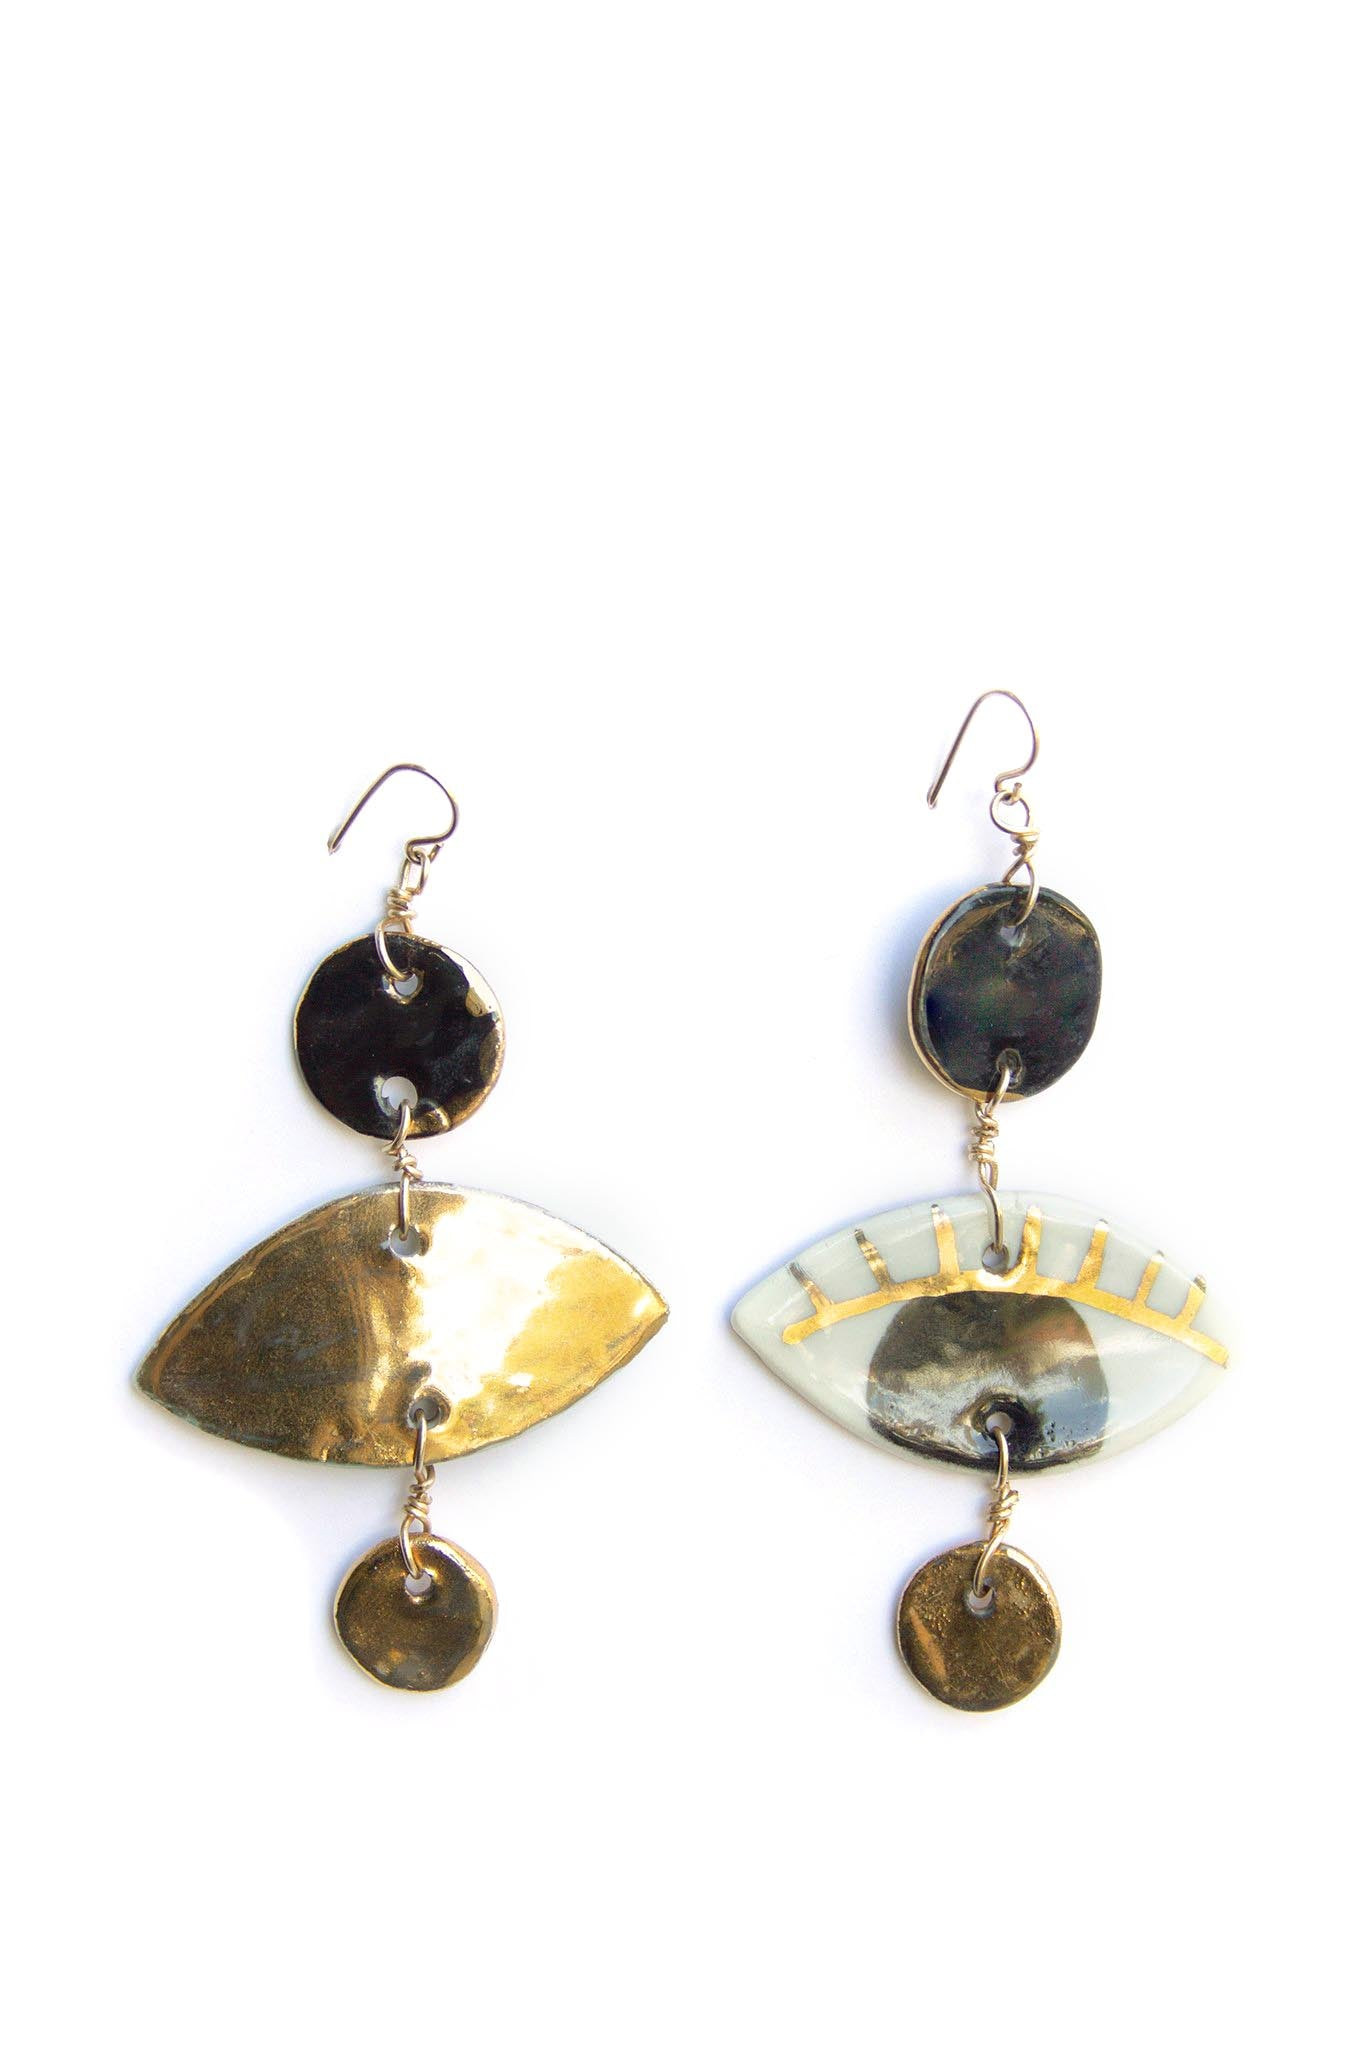 Ippolita Ferrari Dotted Occhi Earrings - Black